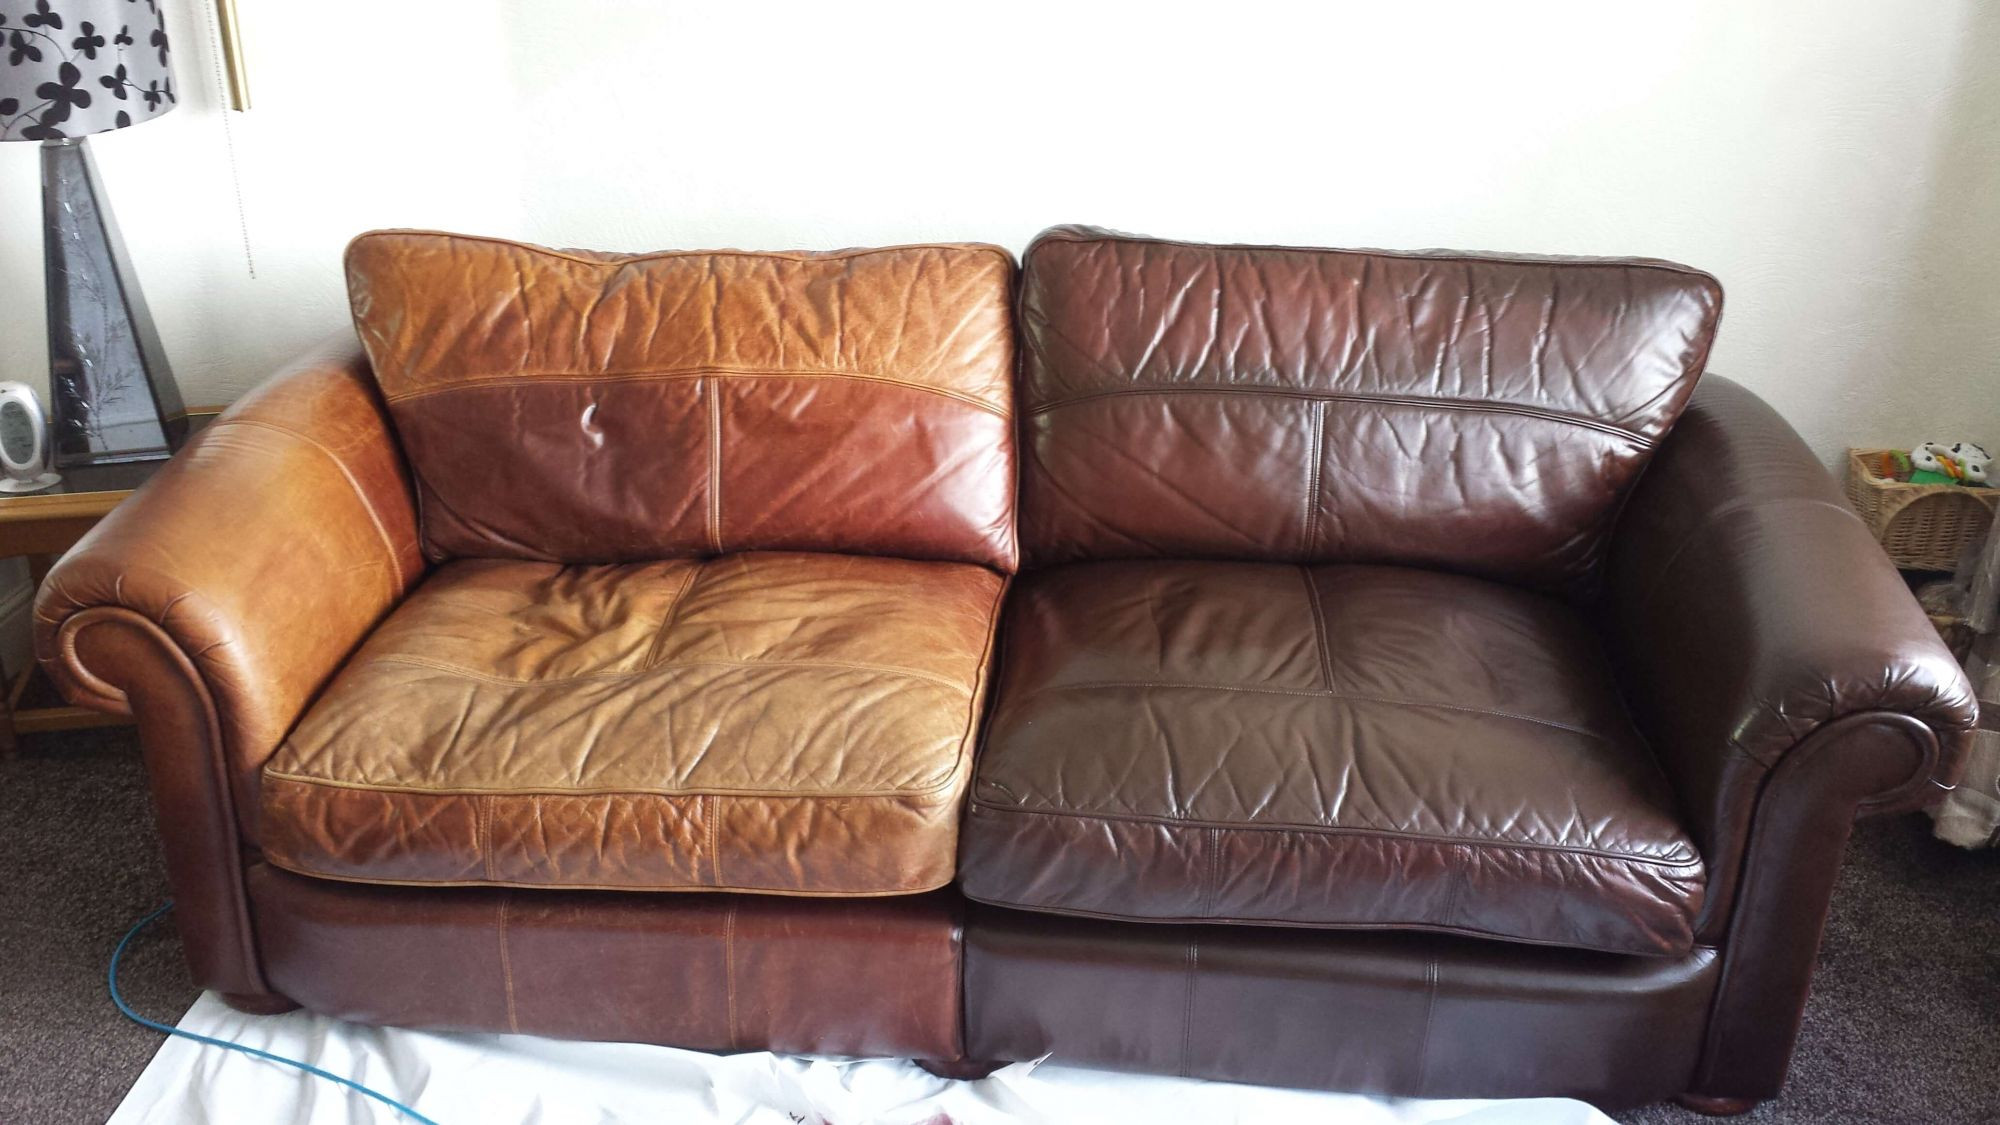 Leather Furniture Repair & Restoration Services CFS